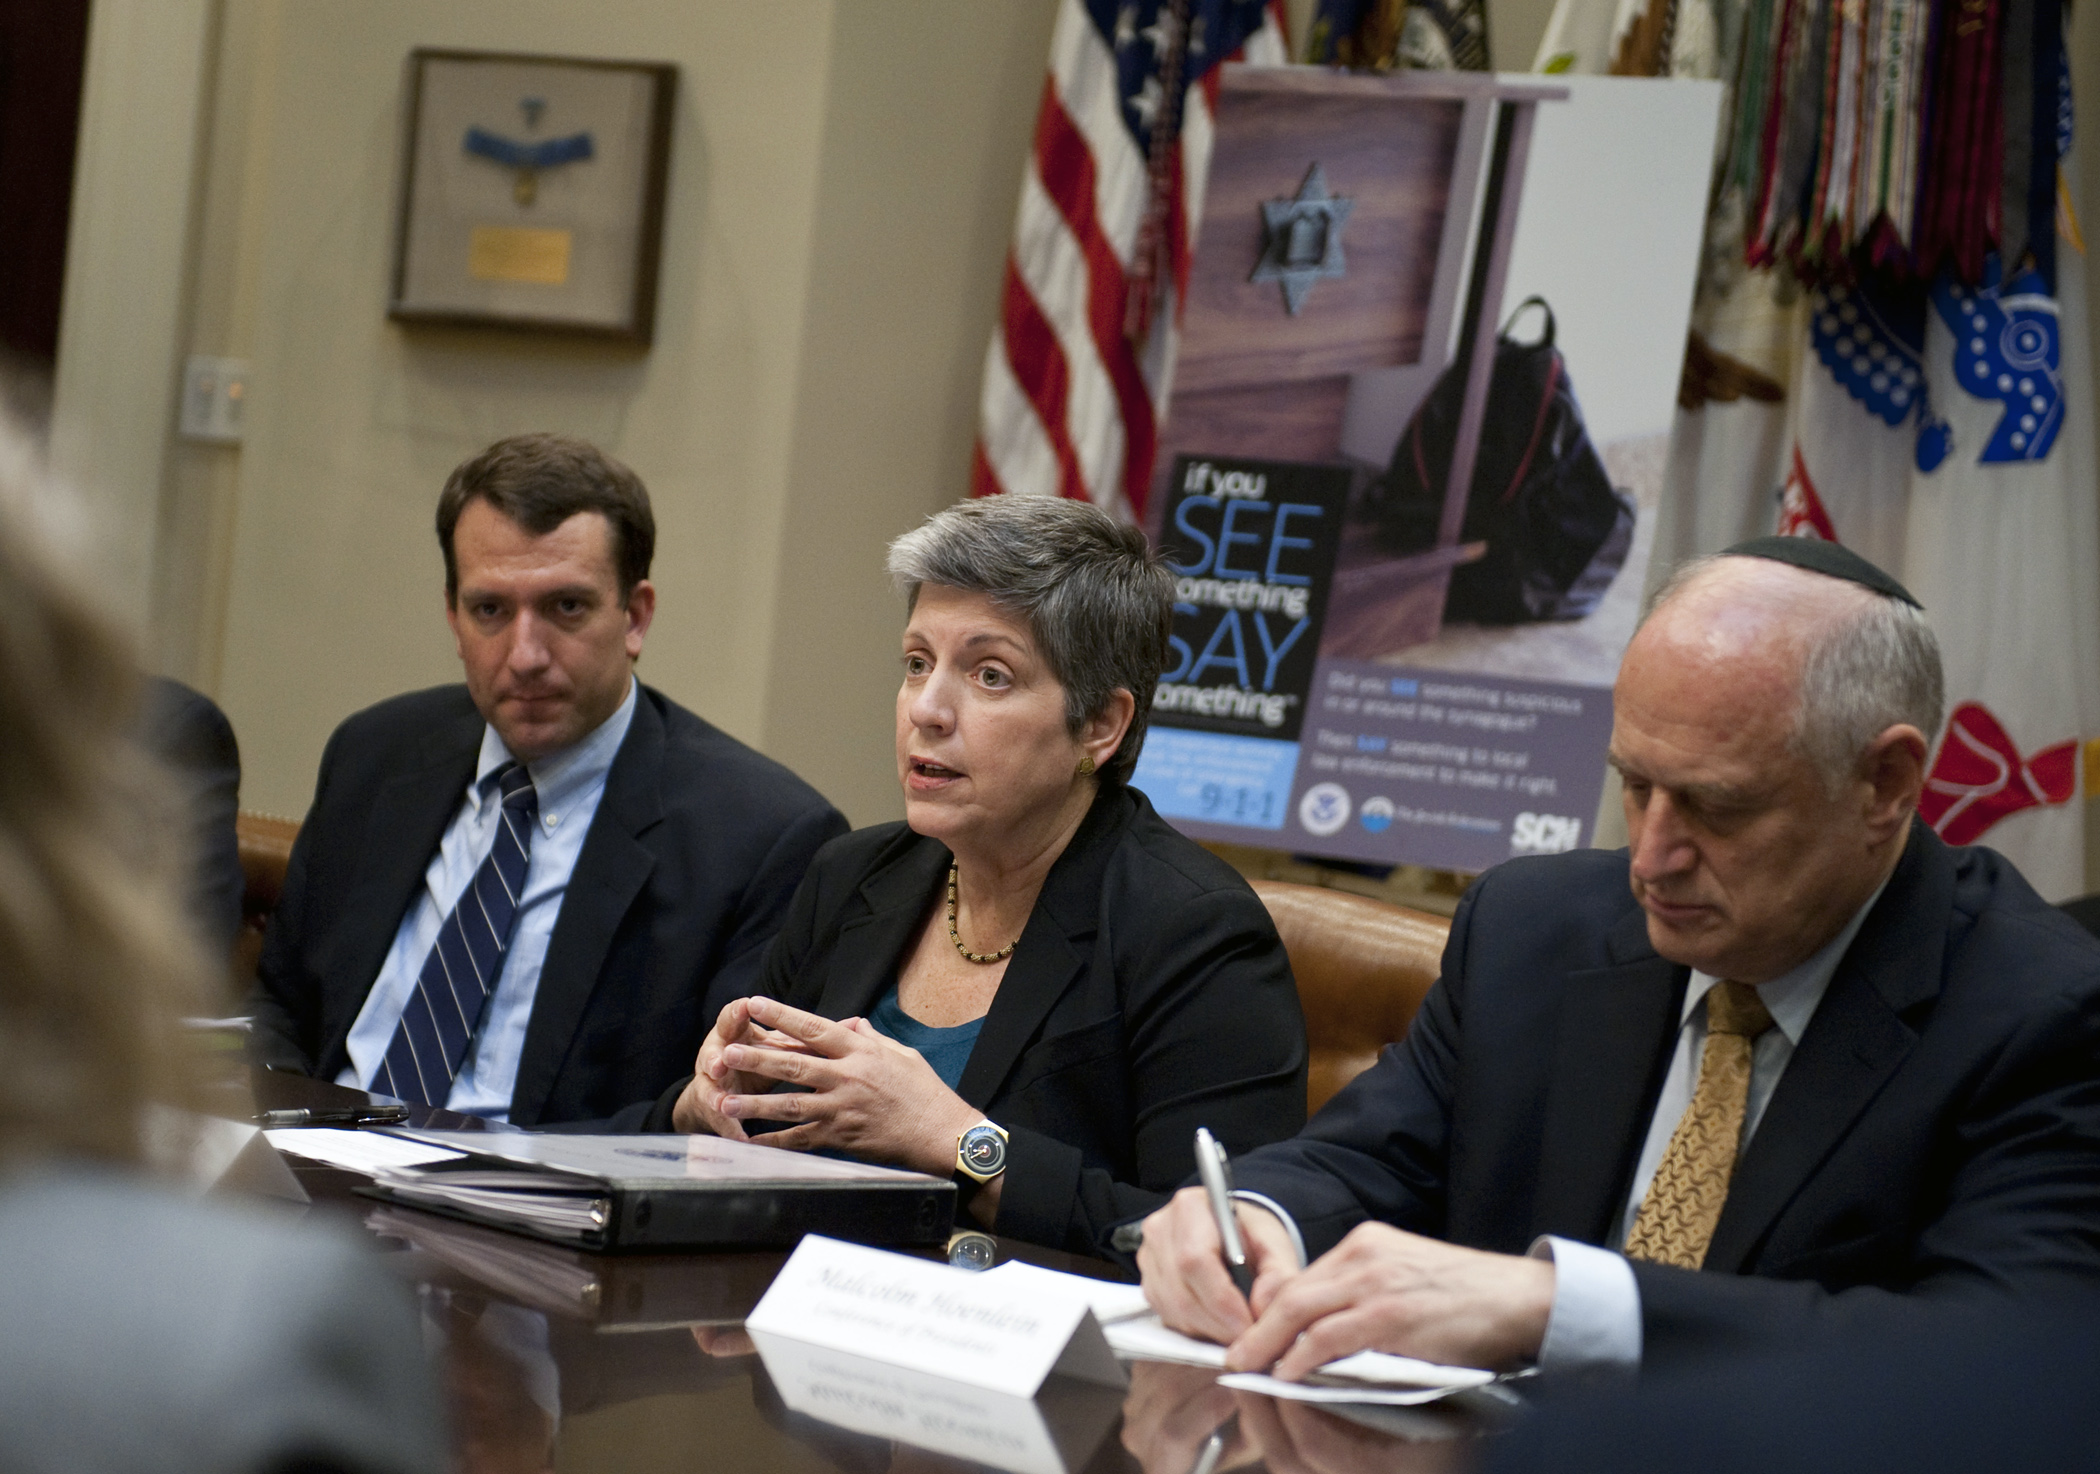 Janet Napolitano at Meeting with Jewish Leaders